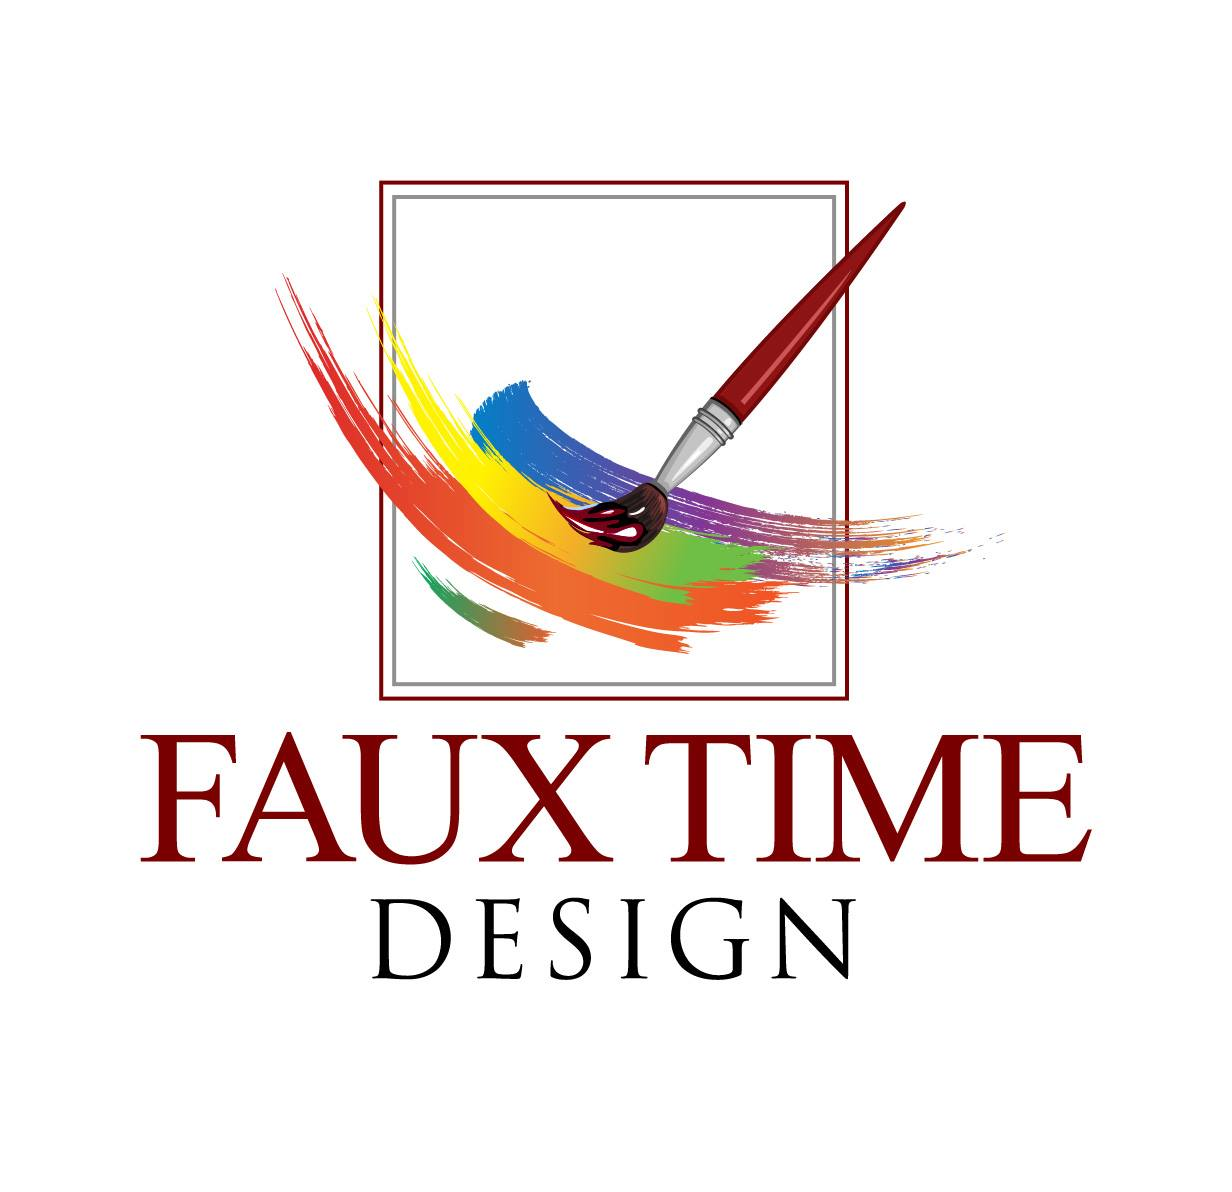 Faux Time Design